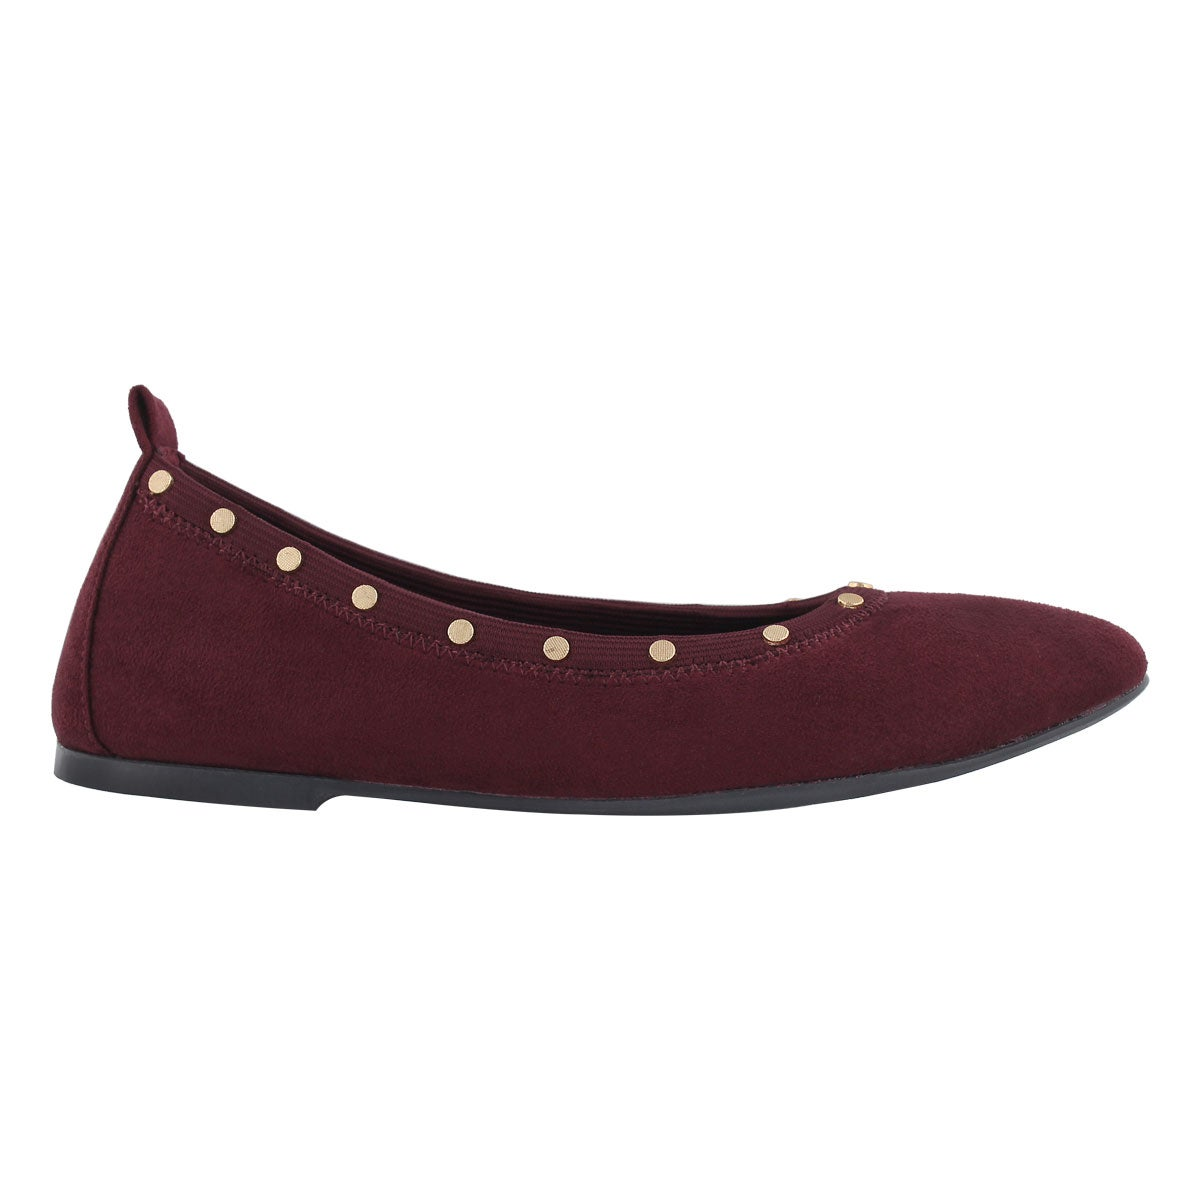 Lds Cleo burgundy studded casual flat